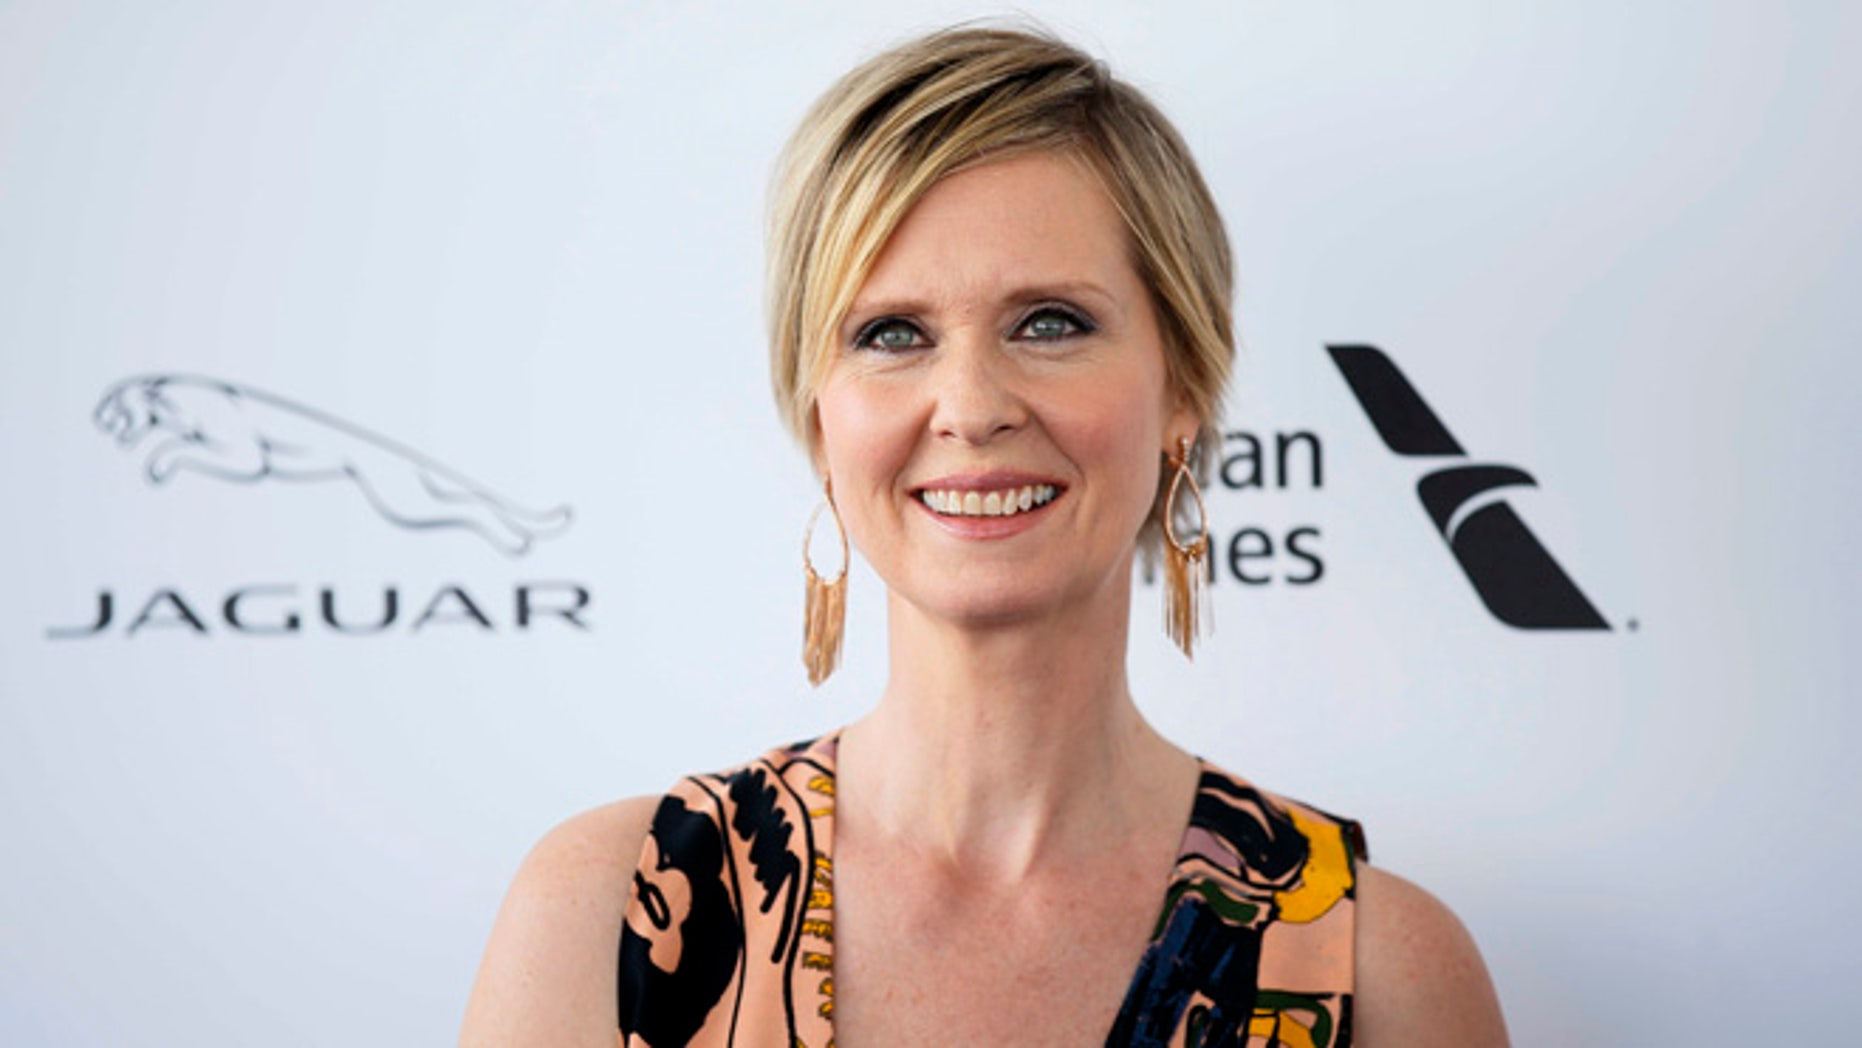 Cynthia Nixon says she's afraid under a Donald Trump government.